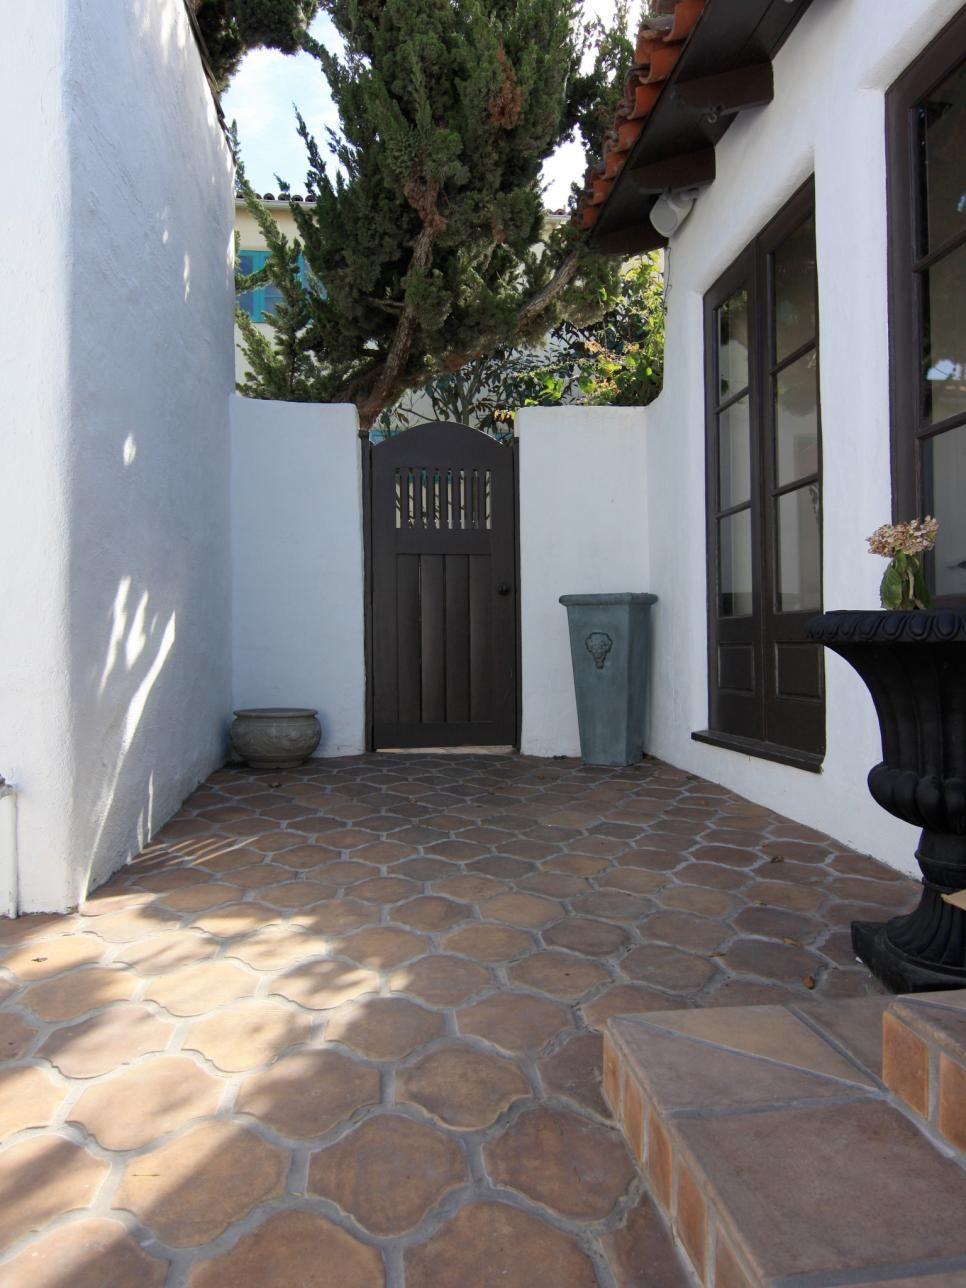 This spanishstyle kitchen courtyard forms an arresting study in